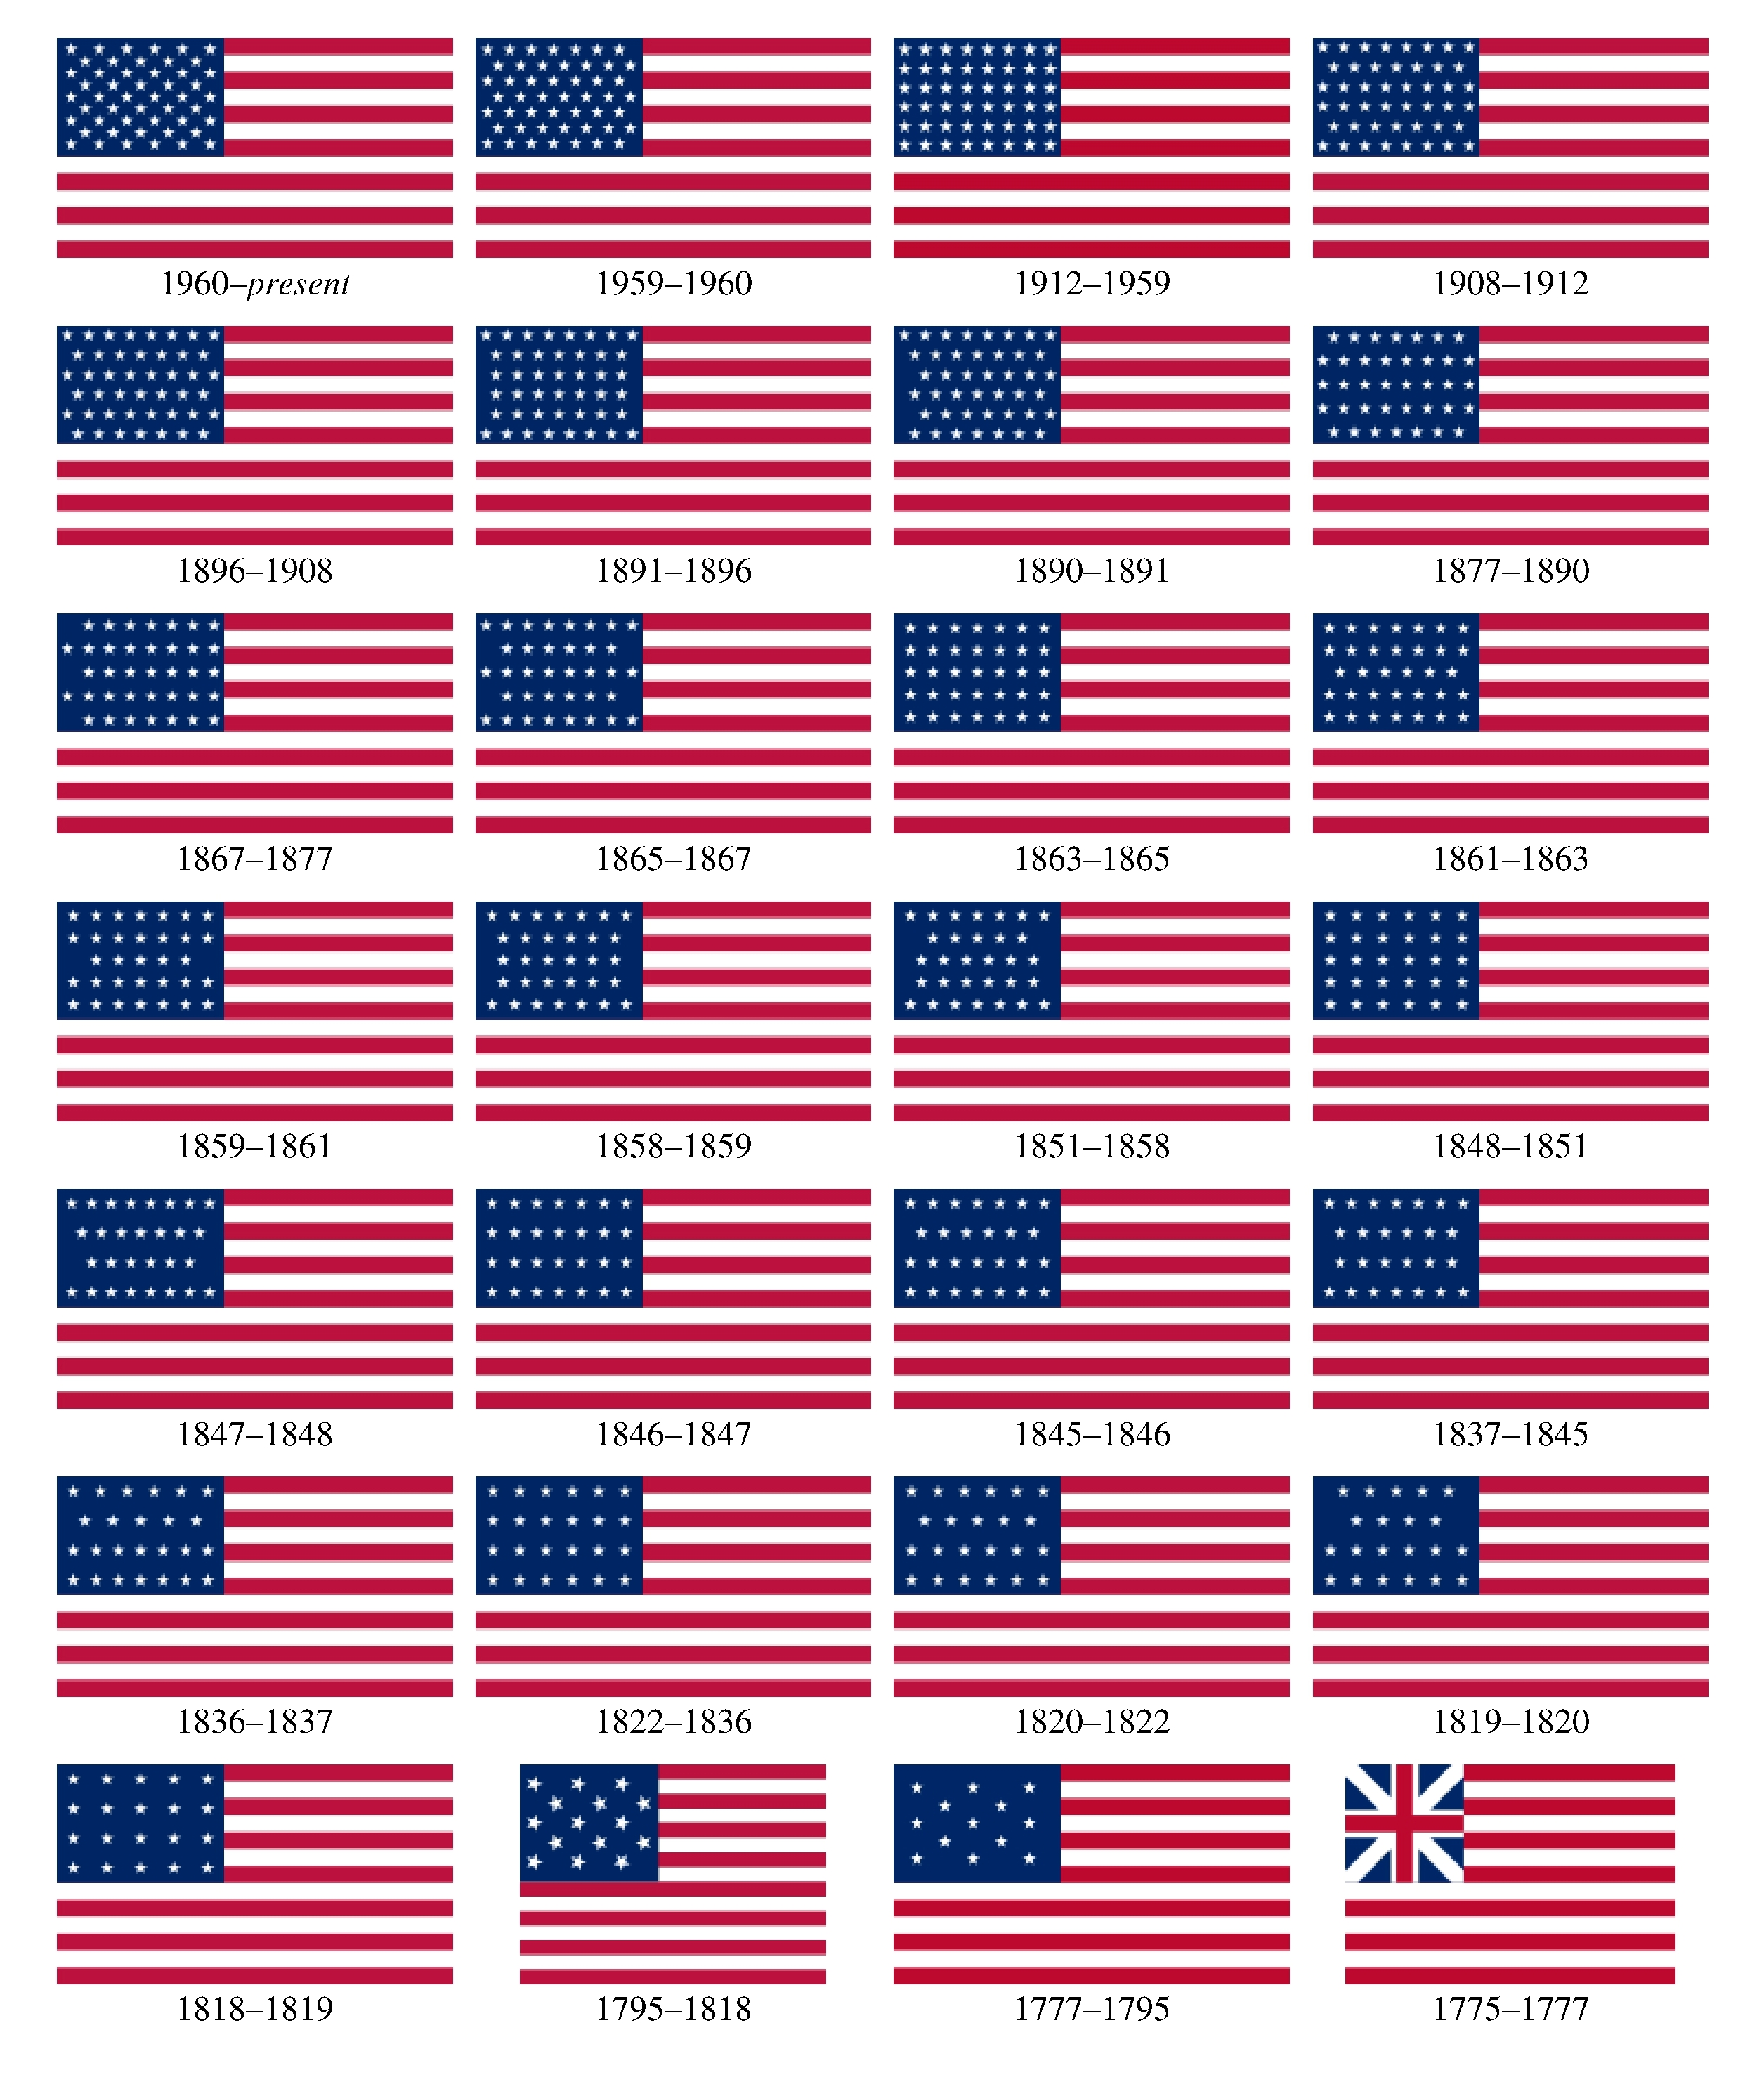 Navy club uss carbon county ship 260 featured flags of for History of american flags